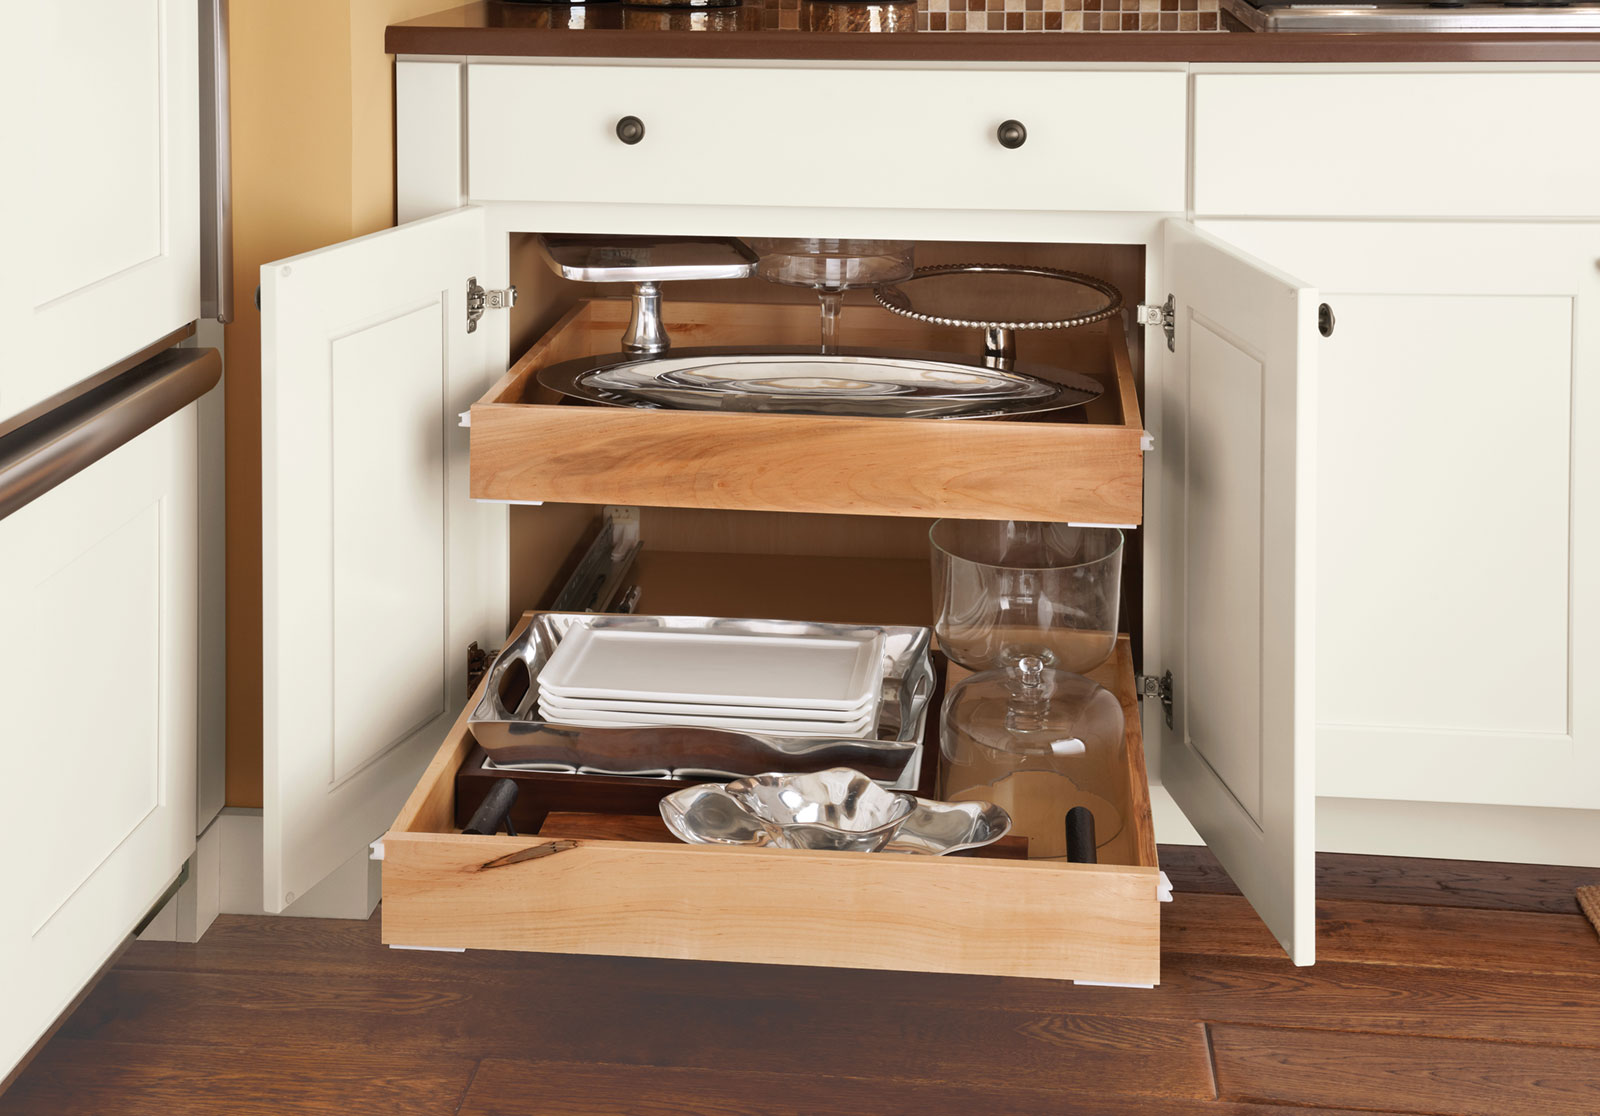 Deep Roll Out Drawers